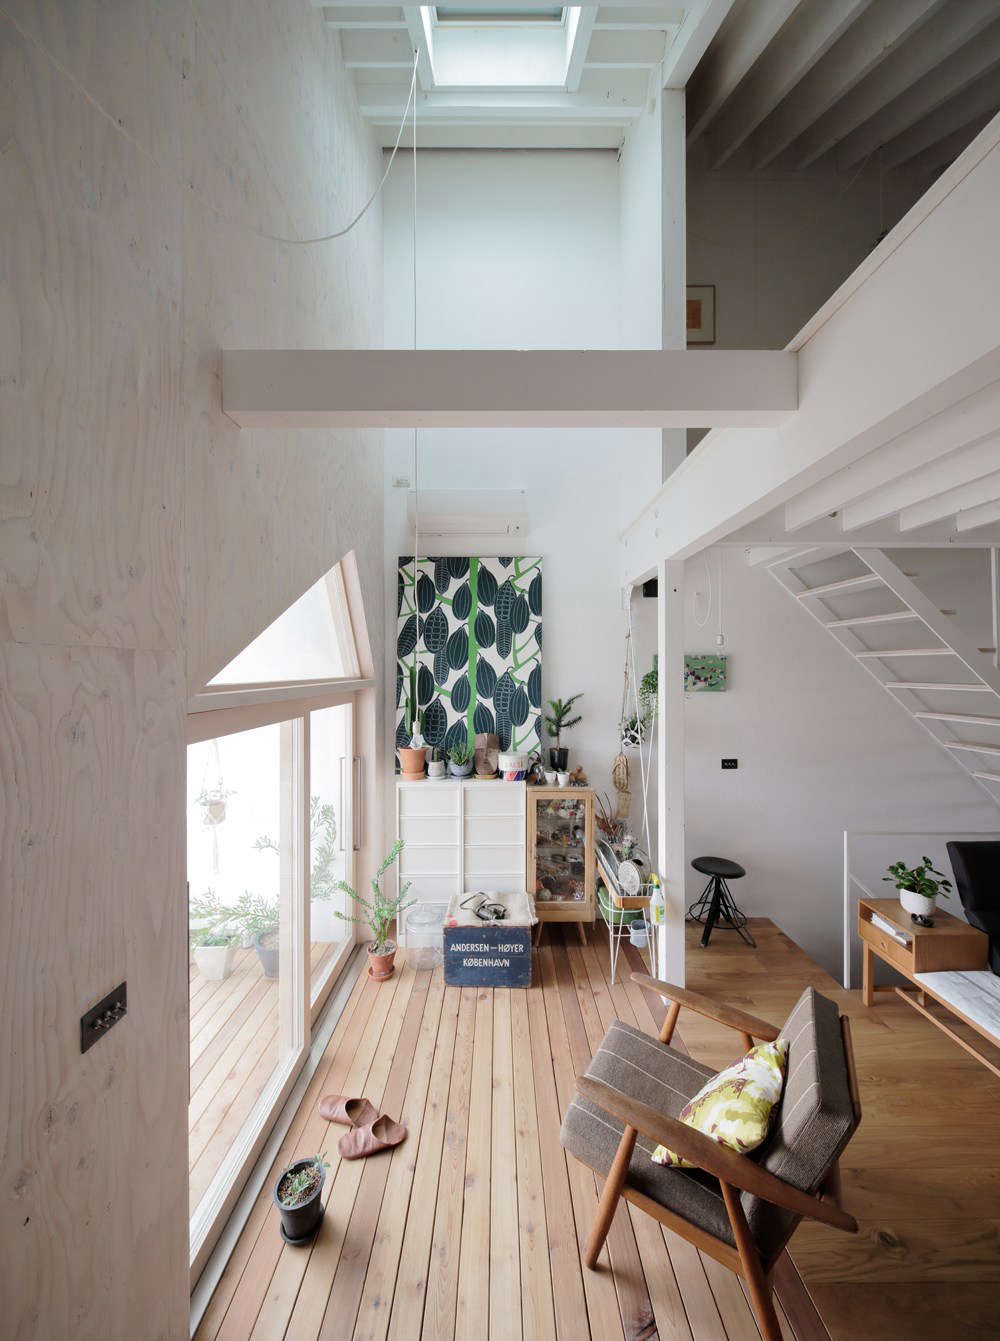 The living area is oriented to the front, south-facing balcony and brightened by a skylight. That&#8